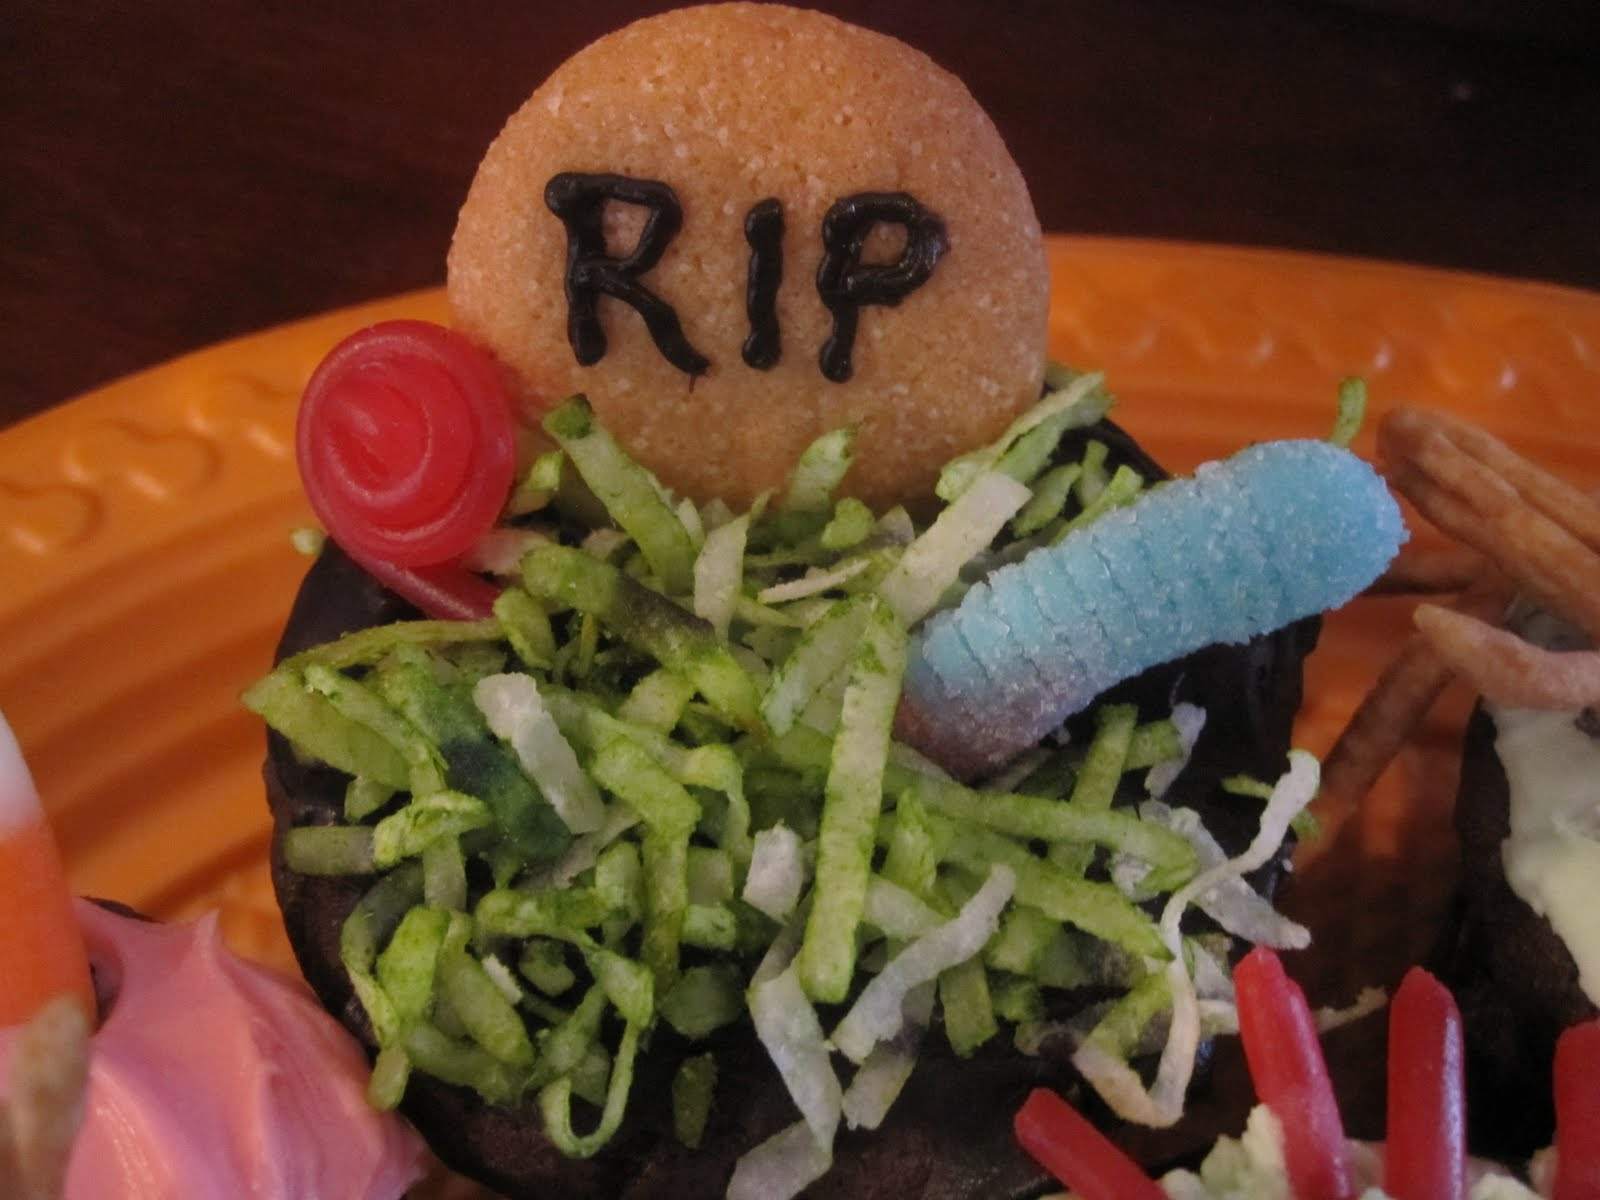 Halloween Cupcake Decorating Ideas Gummy Worms : Halloween Cupcake Decorating Ideas Gummy Worms - neighbor ...